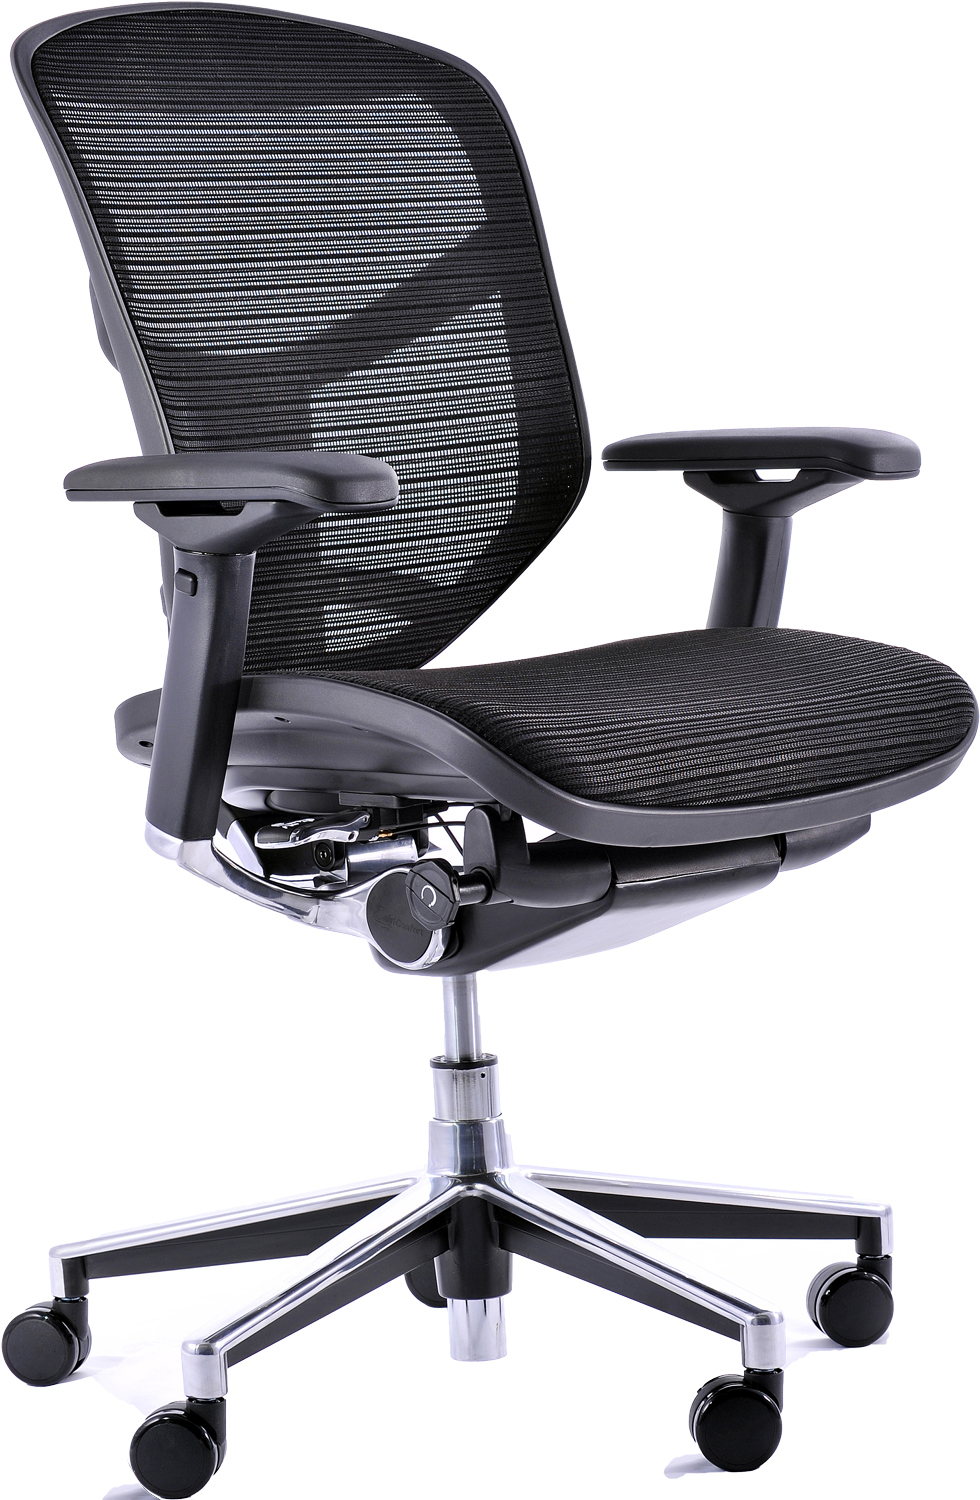 Ergonomic office chair bangalore office chair bangalore - Office furnitur ...